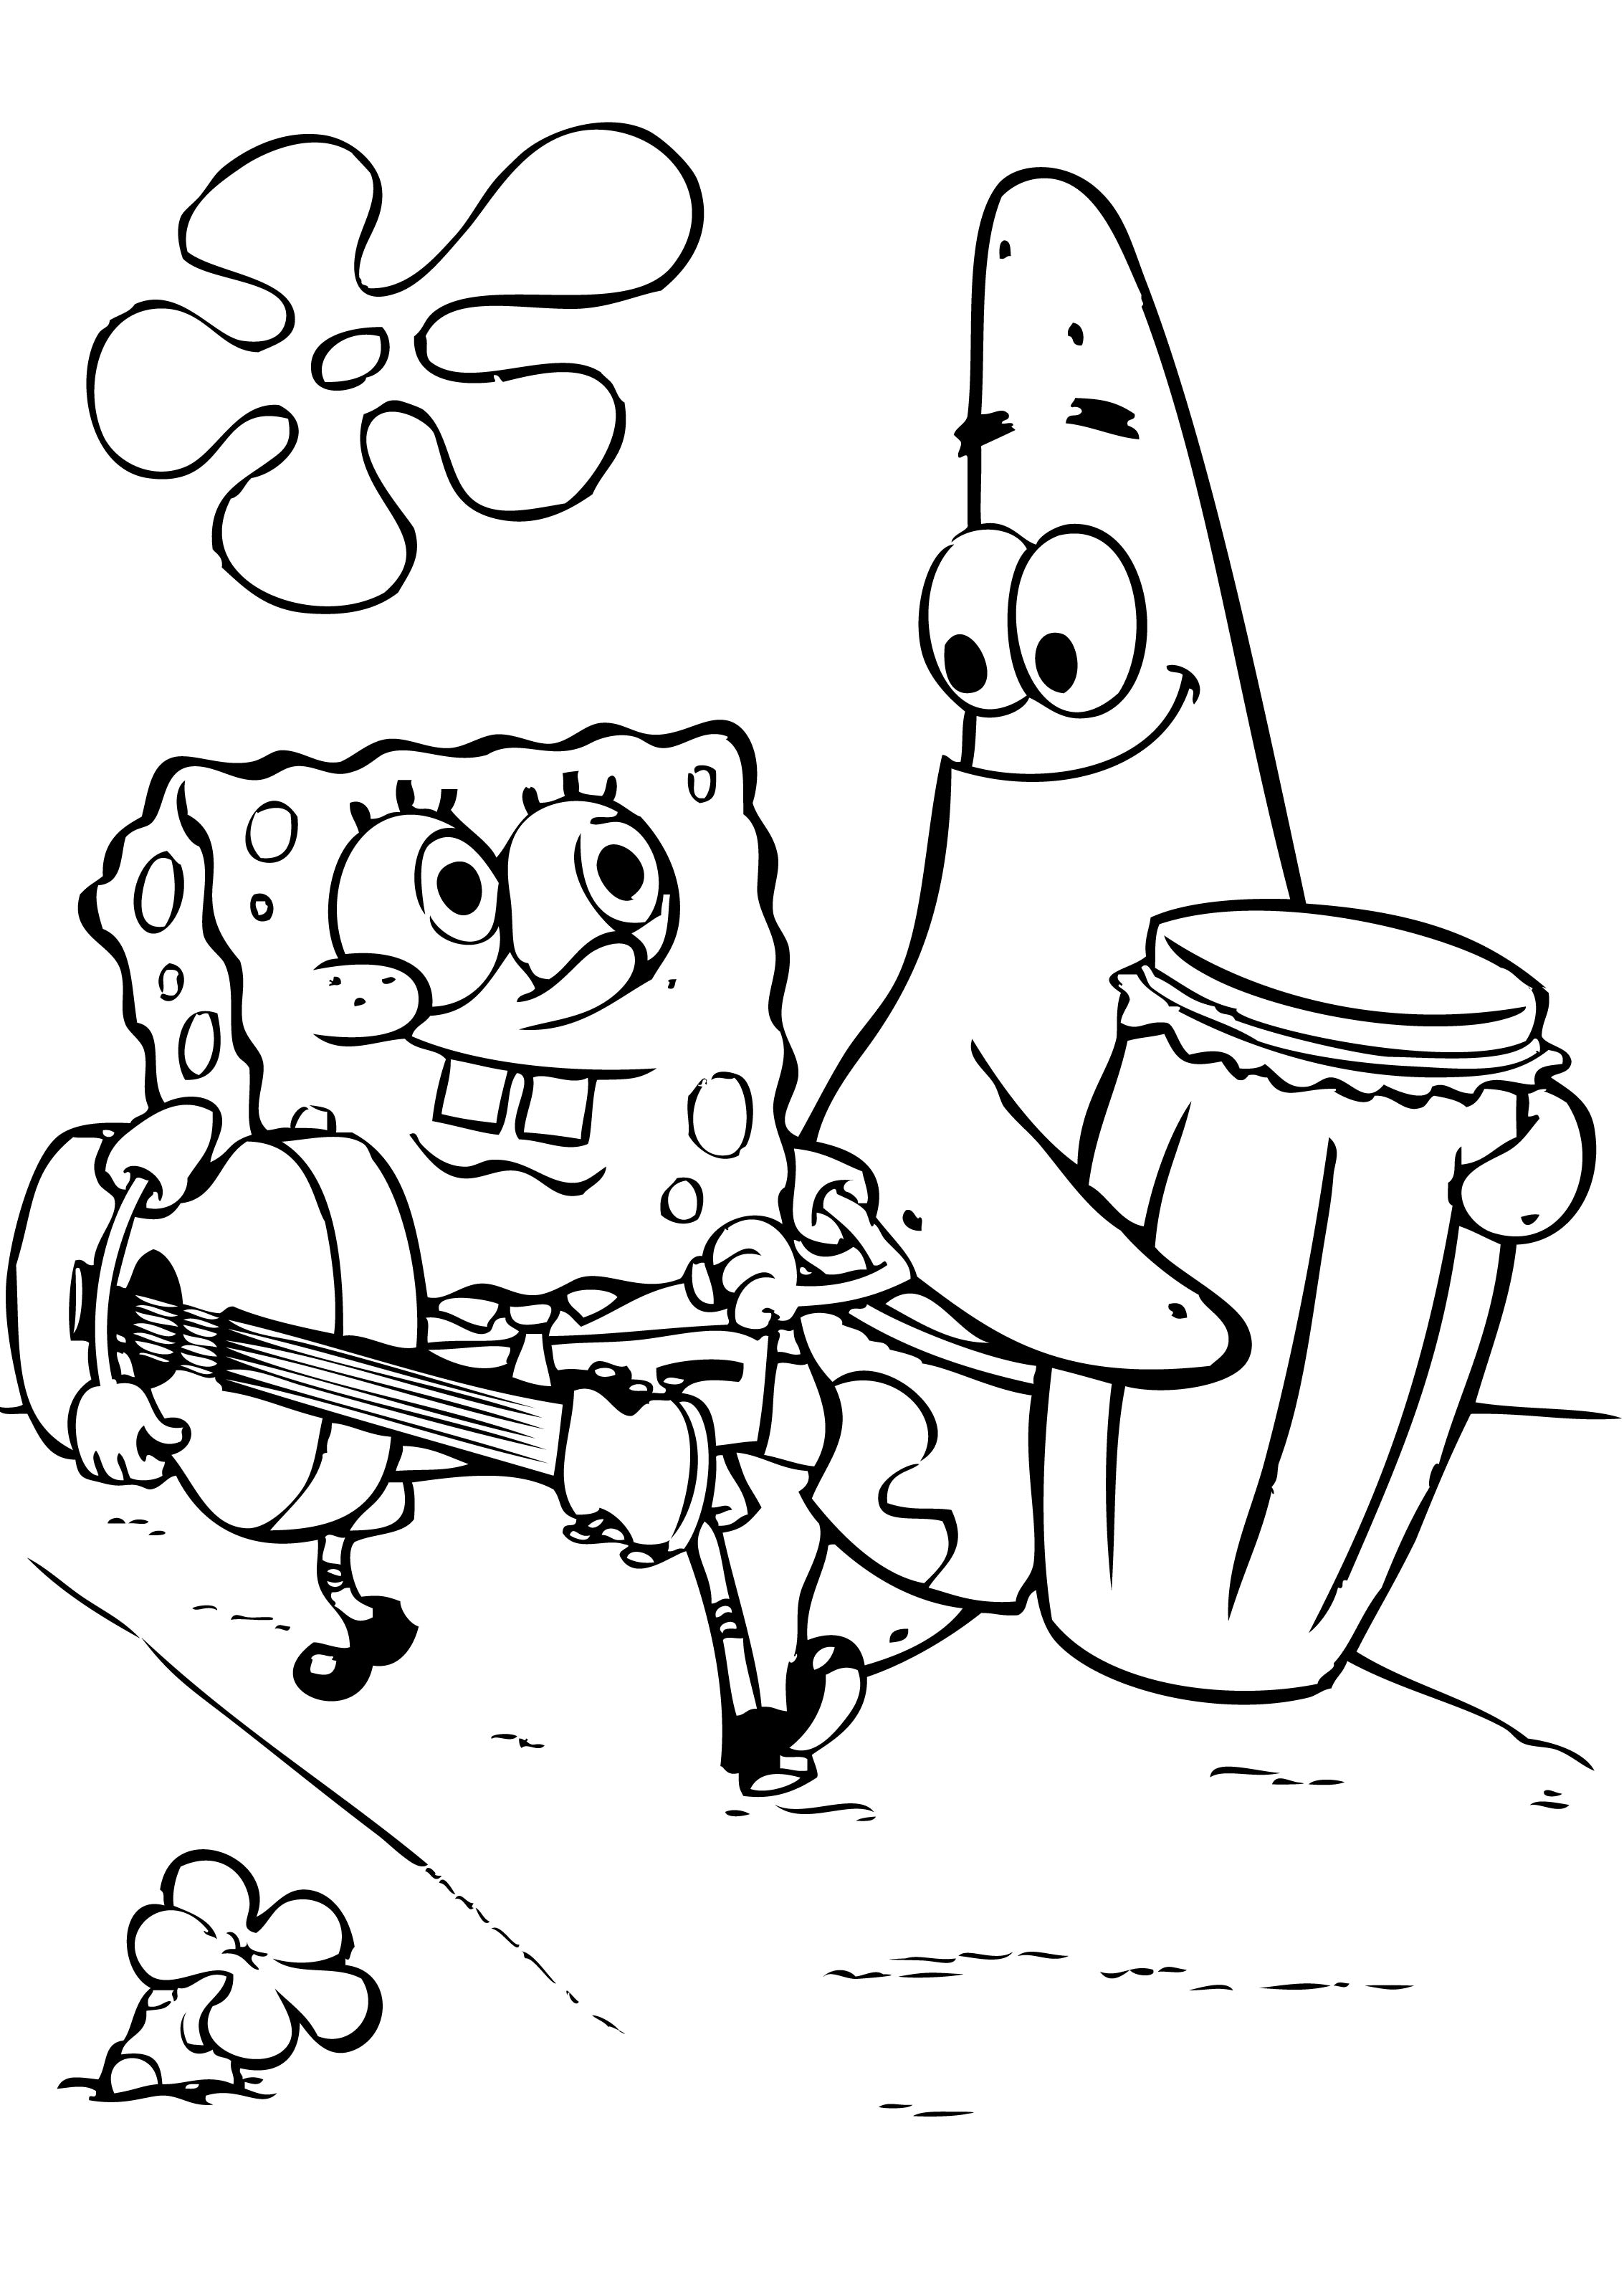 2266x3195 spongebob and patrick coloring pages free coloring pages for kids